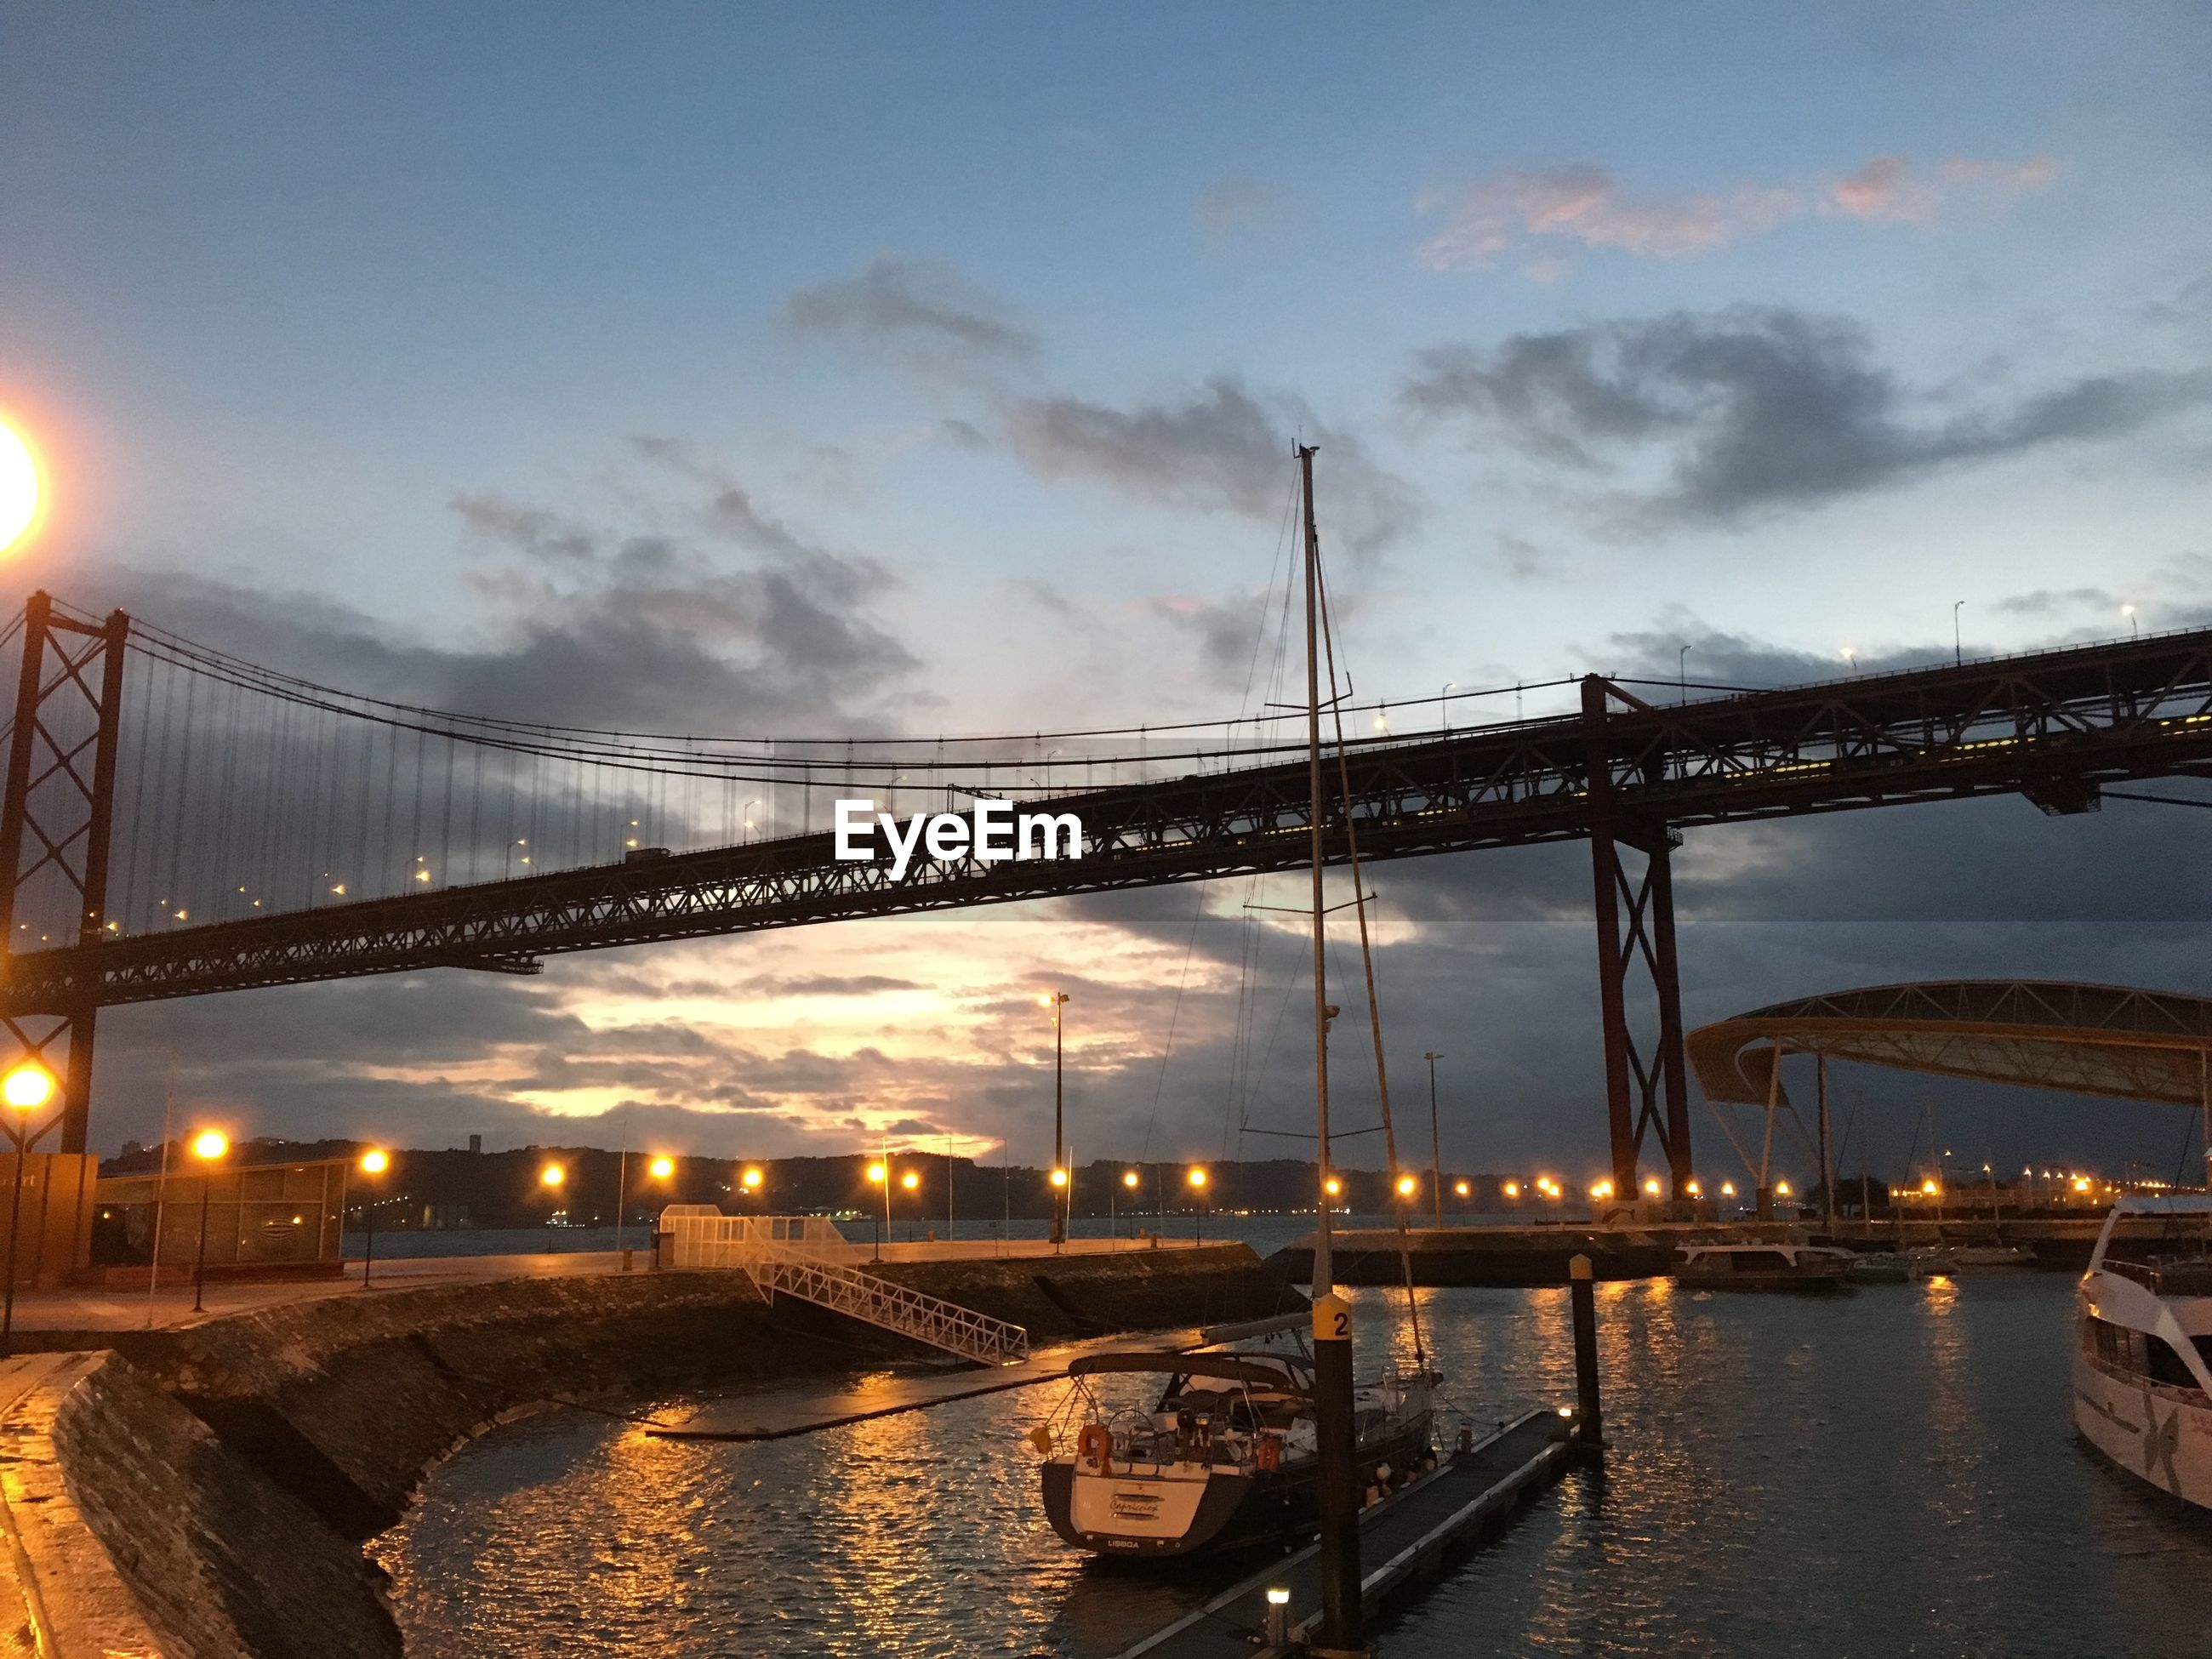 architecture, built structure, illuminated, water, reflection, sky, building exterior, waterfront, city, connection, night, dusk, river, lighting equipment, bridge - man made structure, cloud - sky, street light, travel destinations, outdoors, low angle view